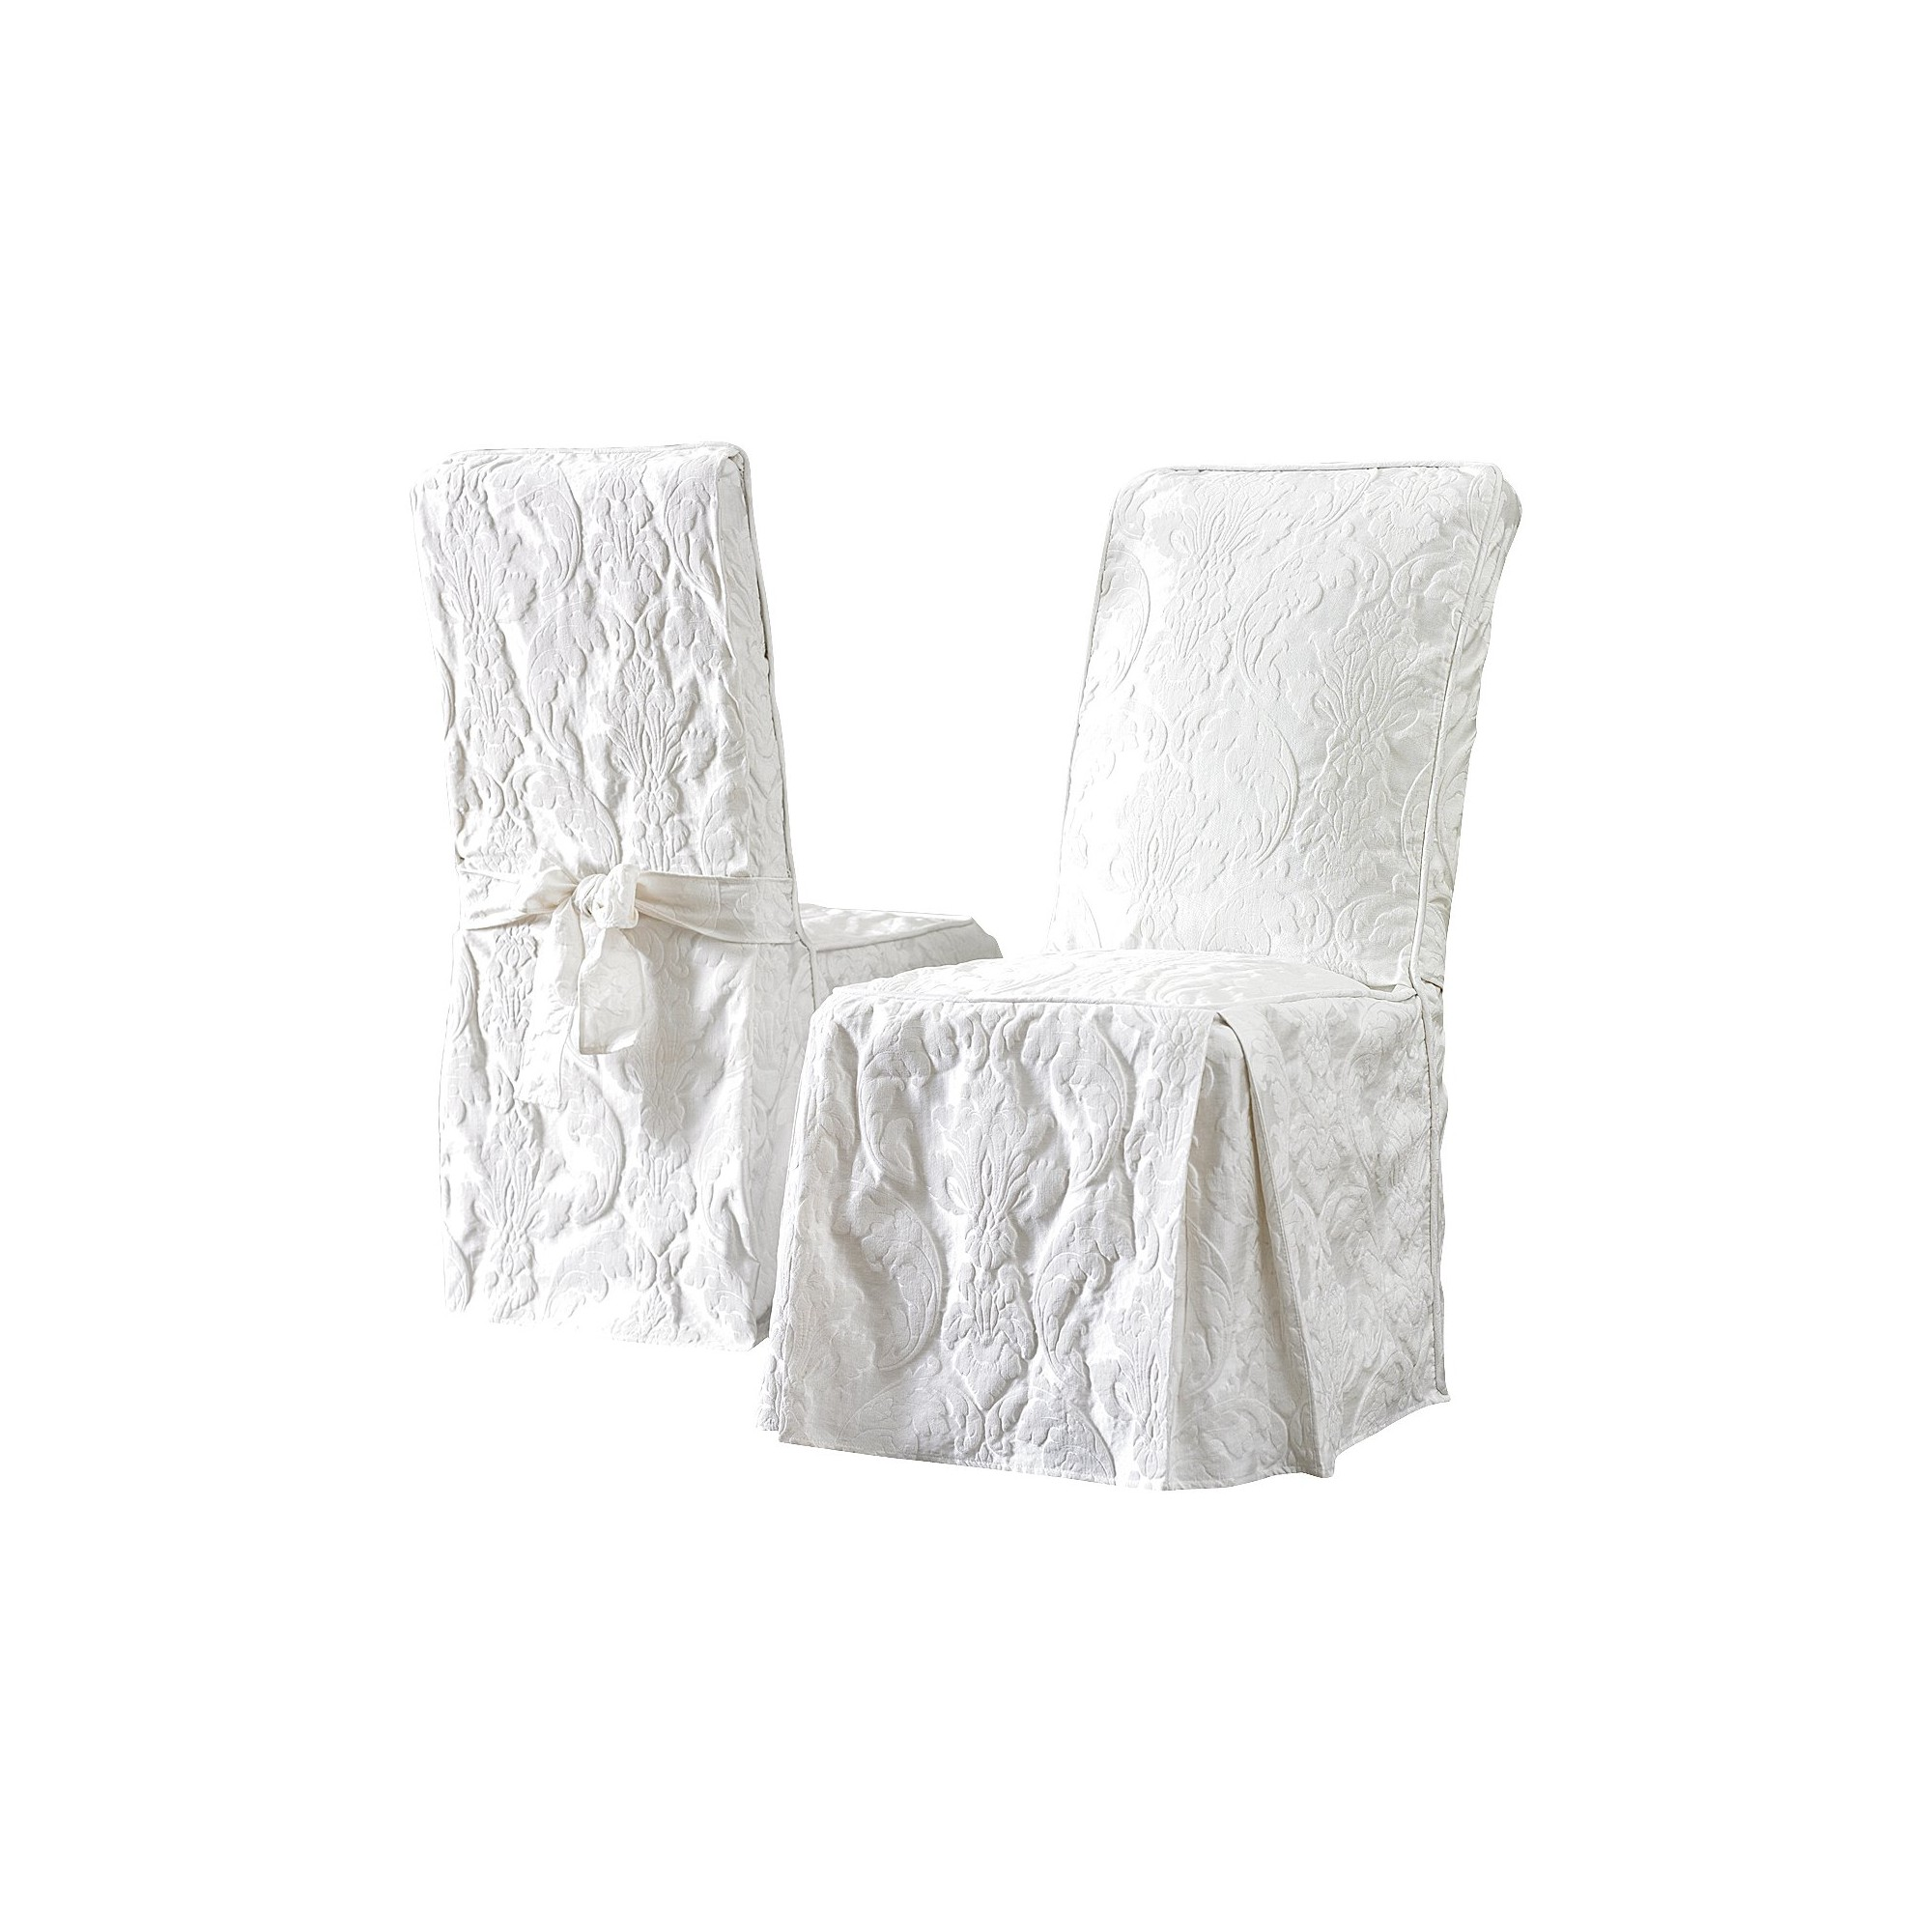 Matelasse Damask Dining Room Chair Cover White - Sure Fit